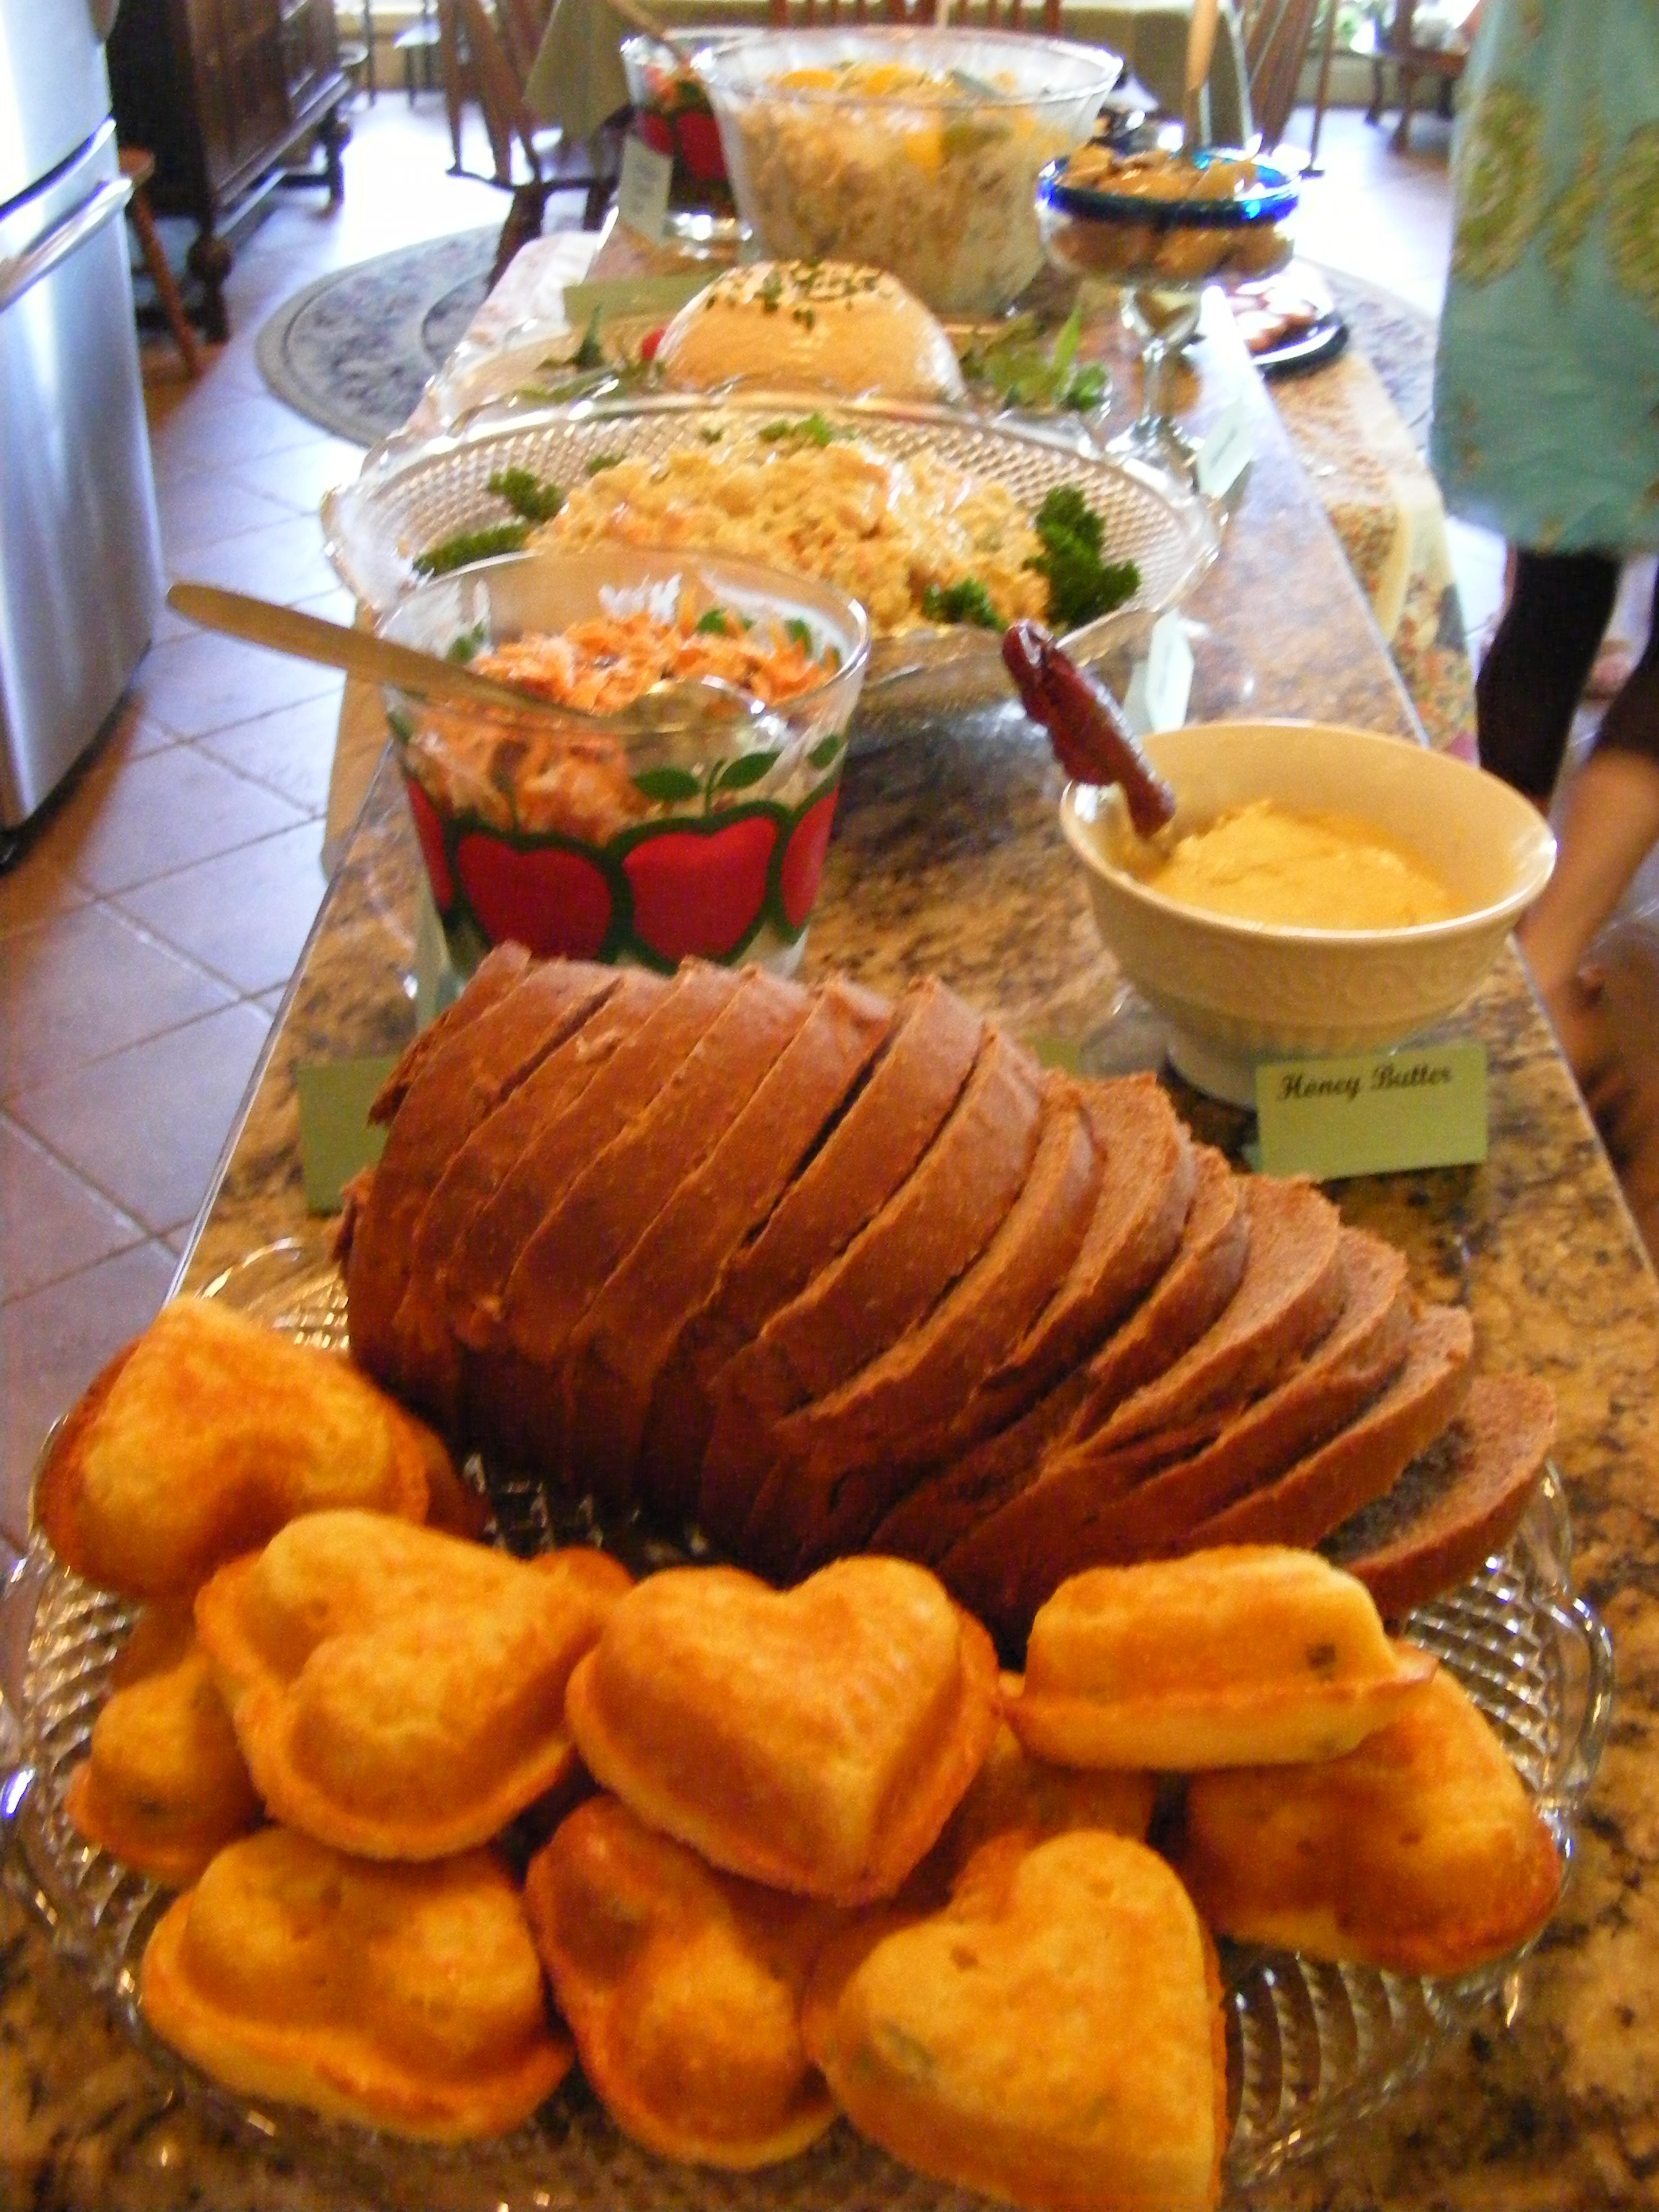 Breads and salads